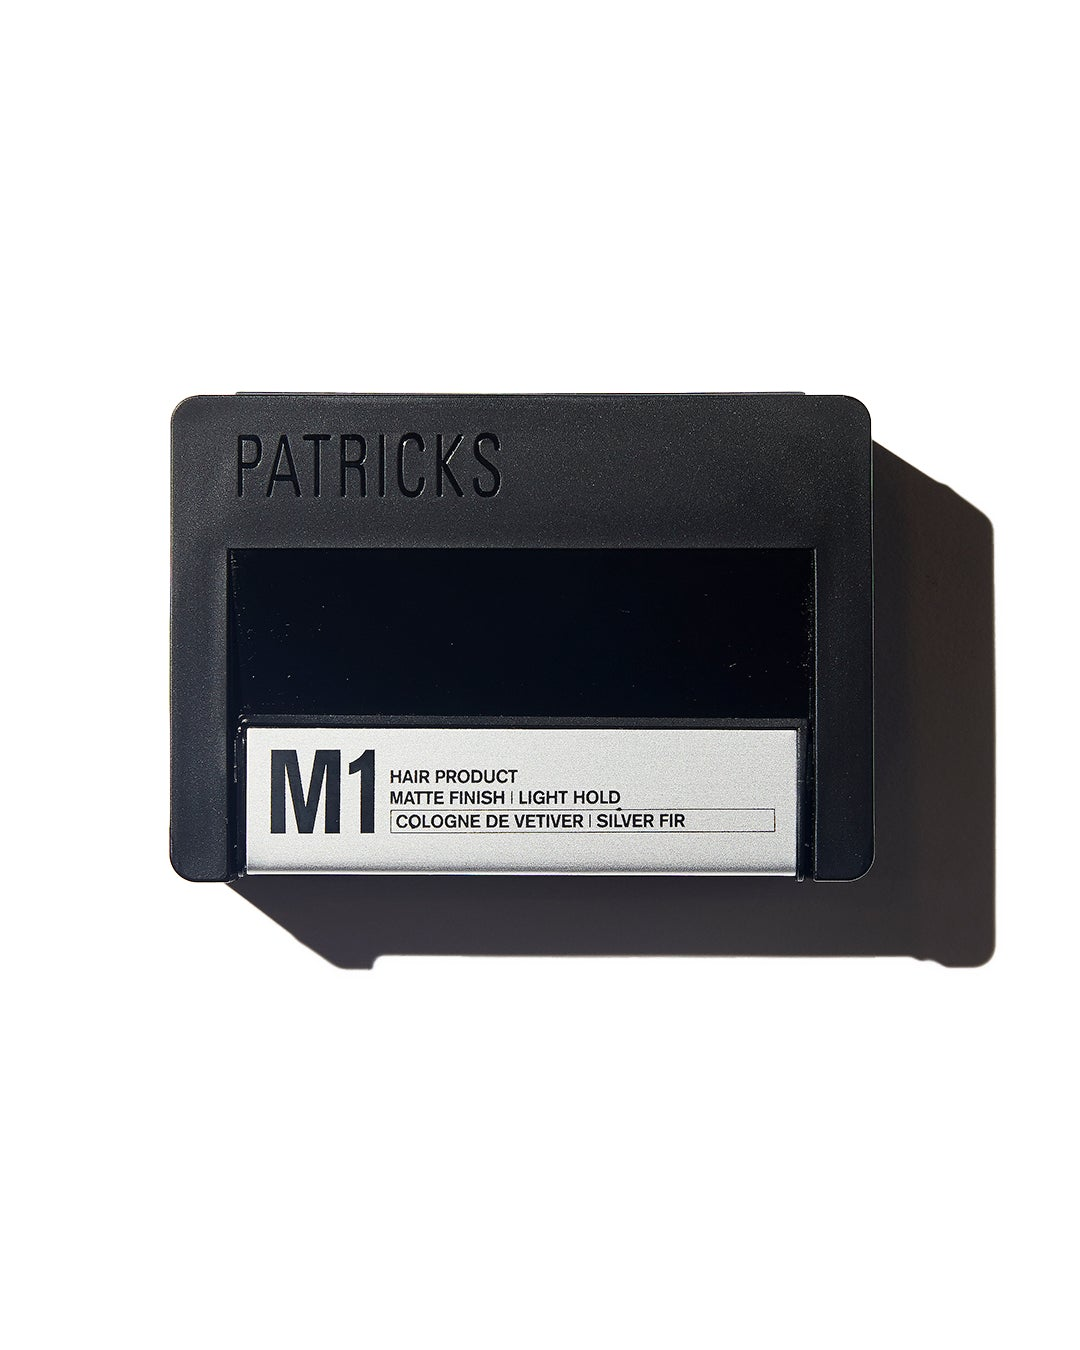 Patricks Light Hold hair product in black rectangular container with silver label on white background